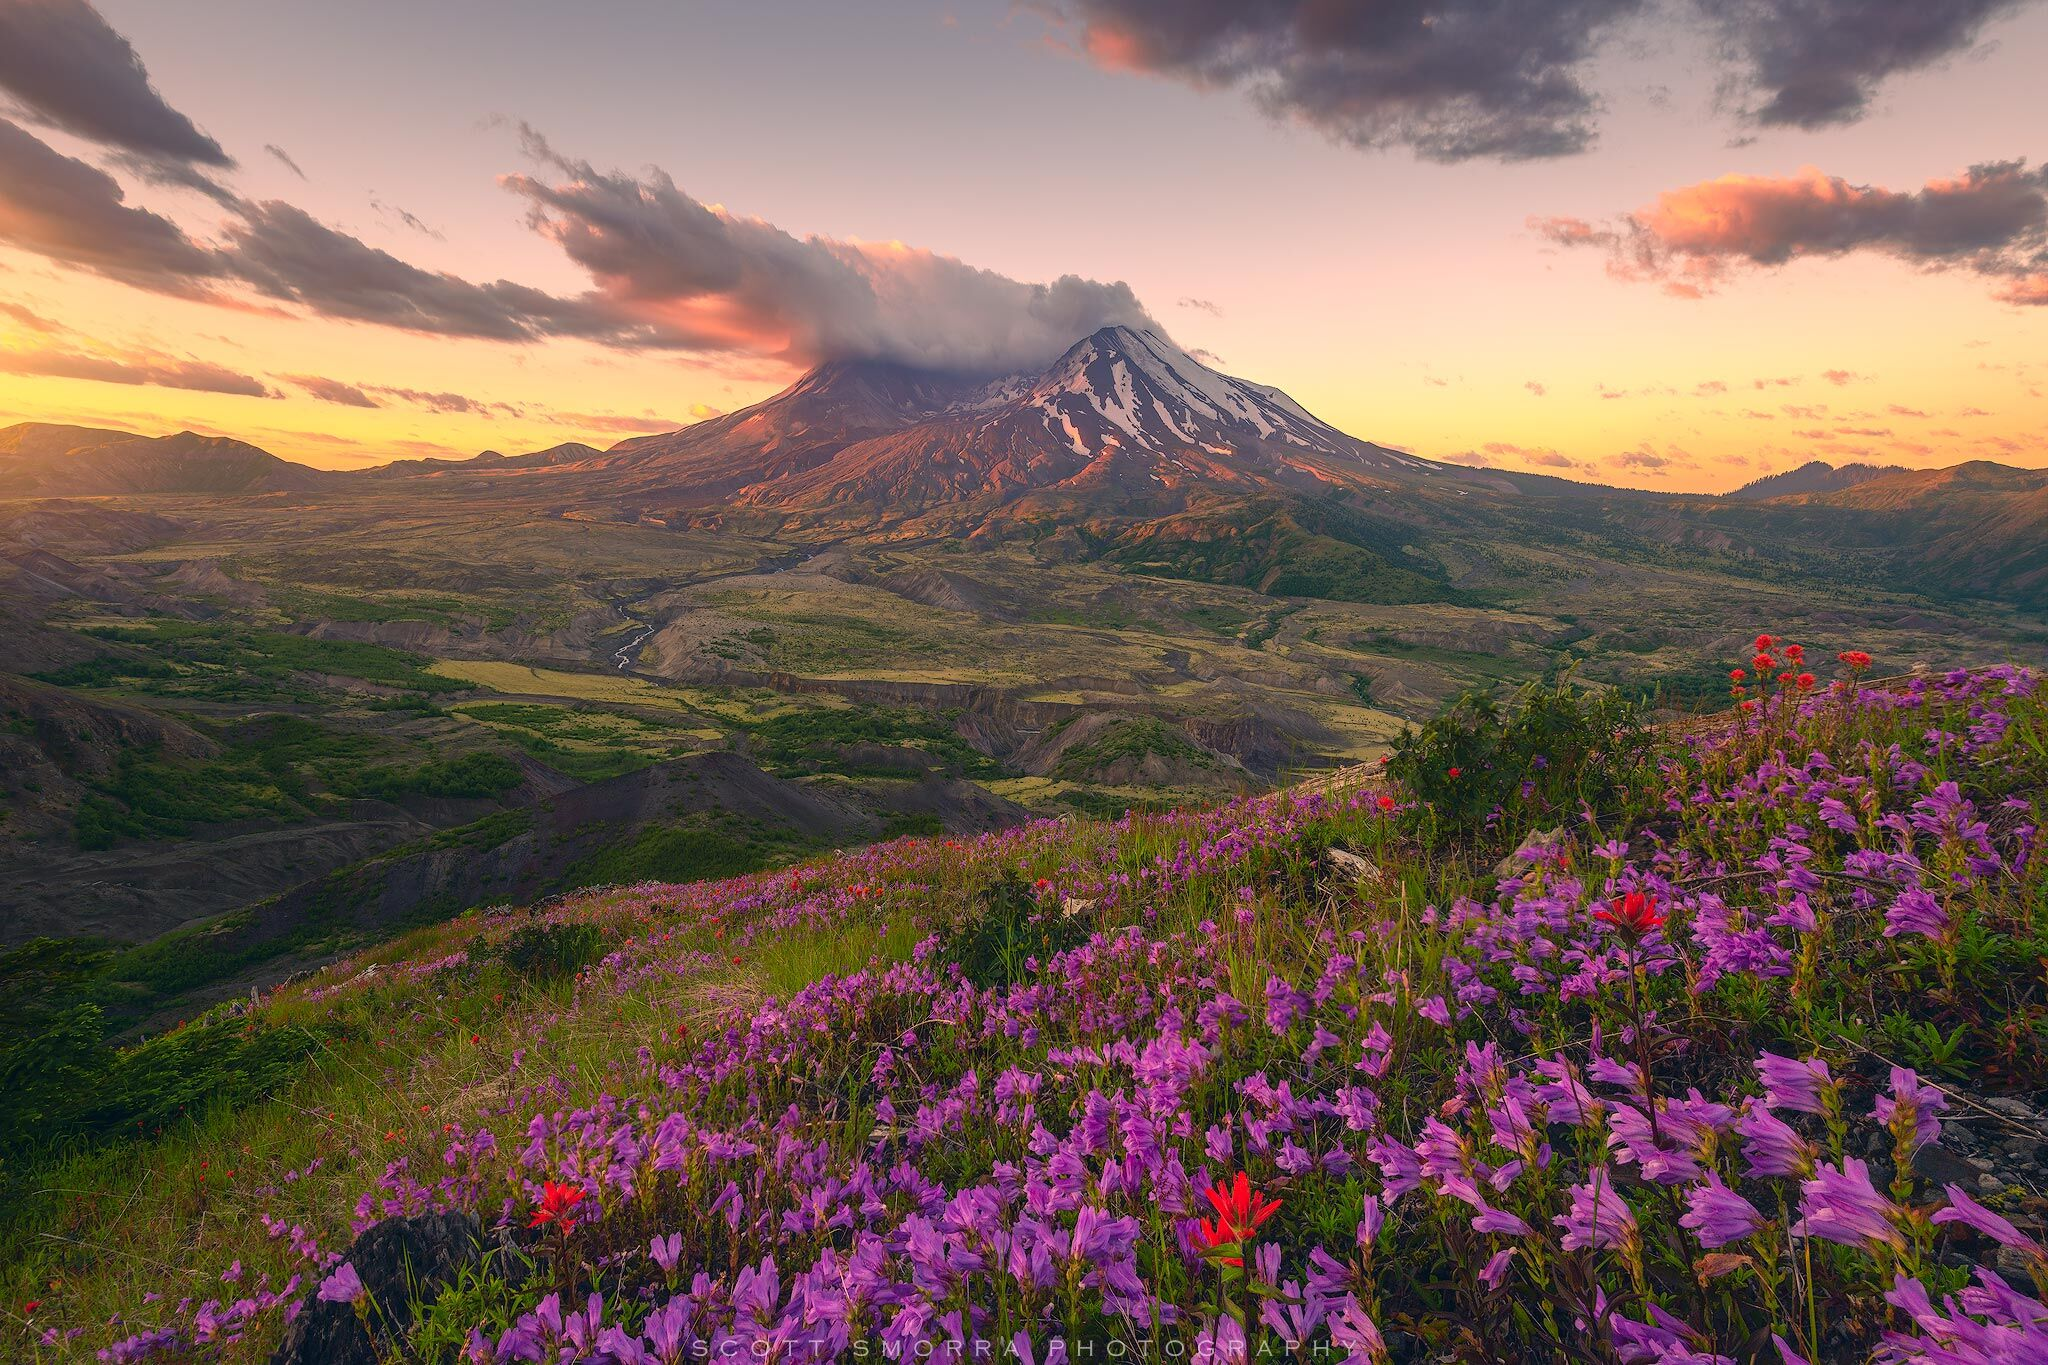 Mount, St, Helens, Summer, Wildflowers, National, Volcanic Monument, Washington, Cascades, eruption, recovery, sunrise, alpenglow, photo